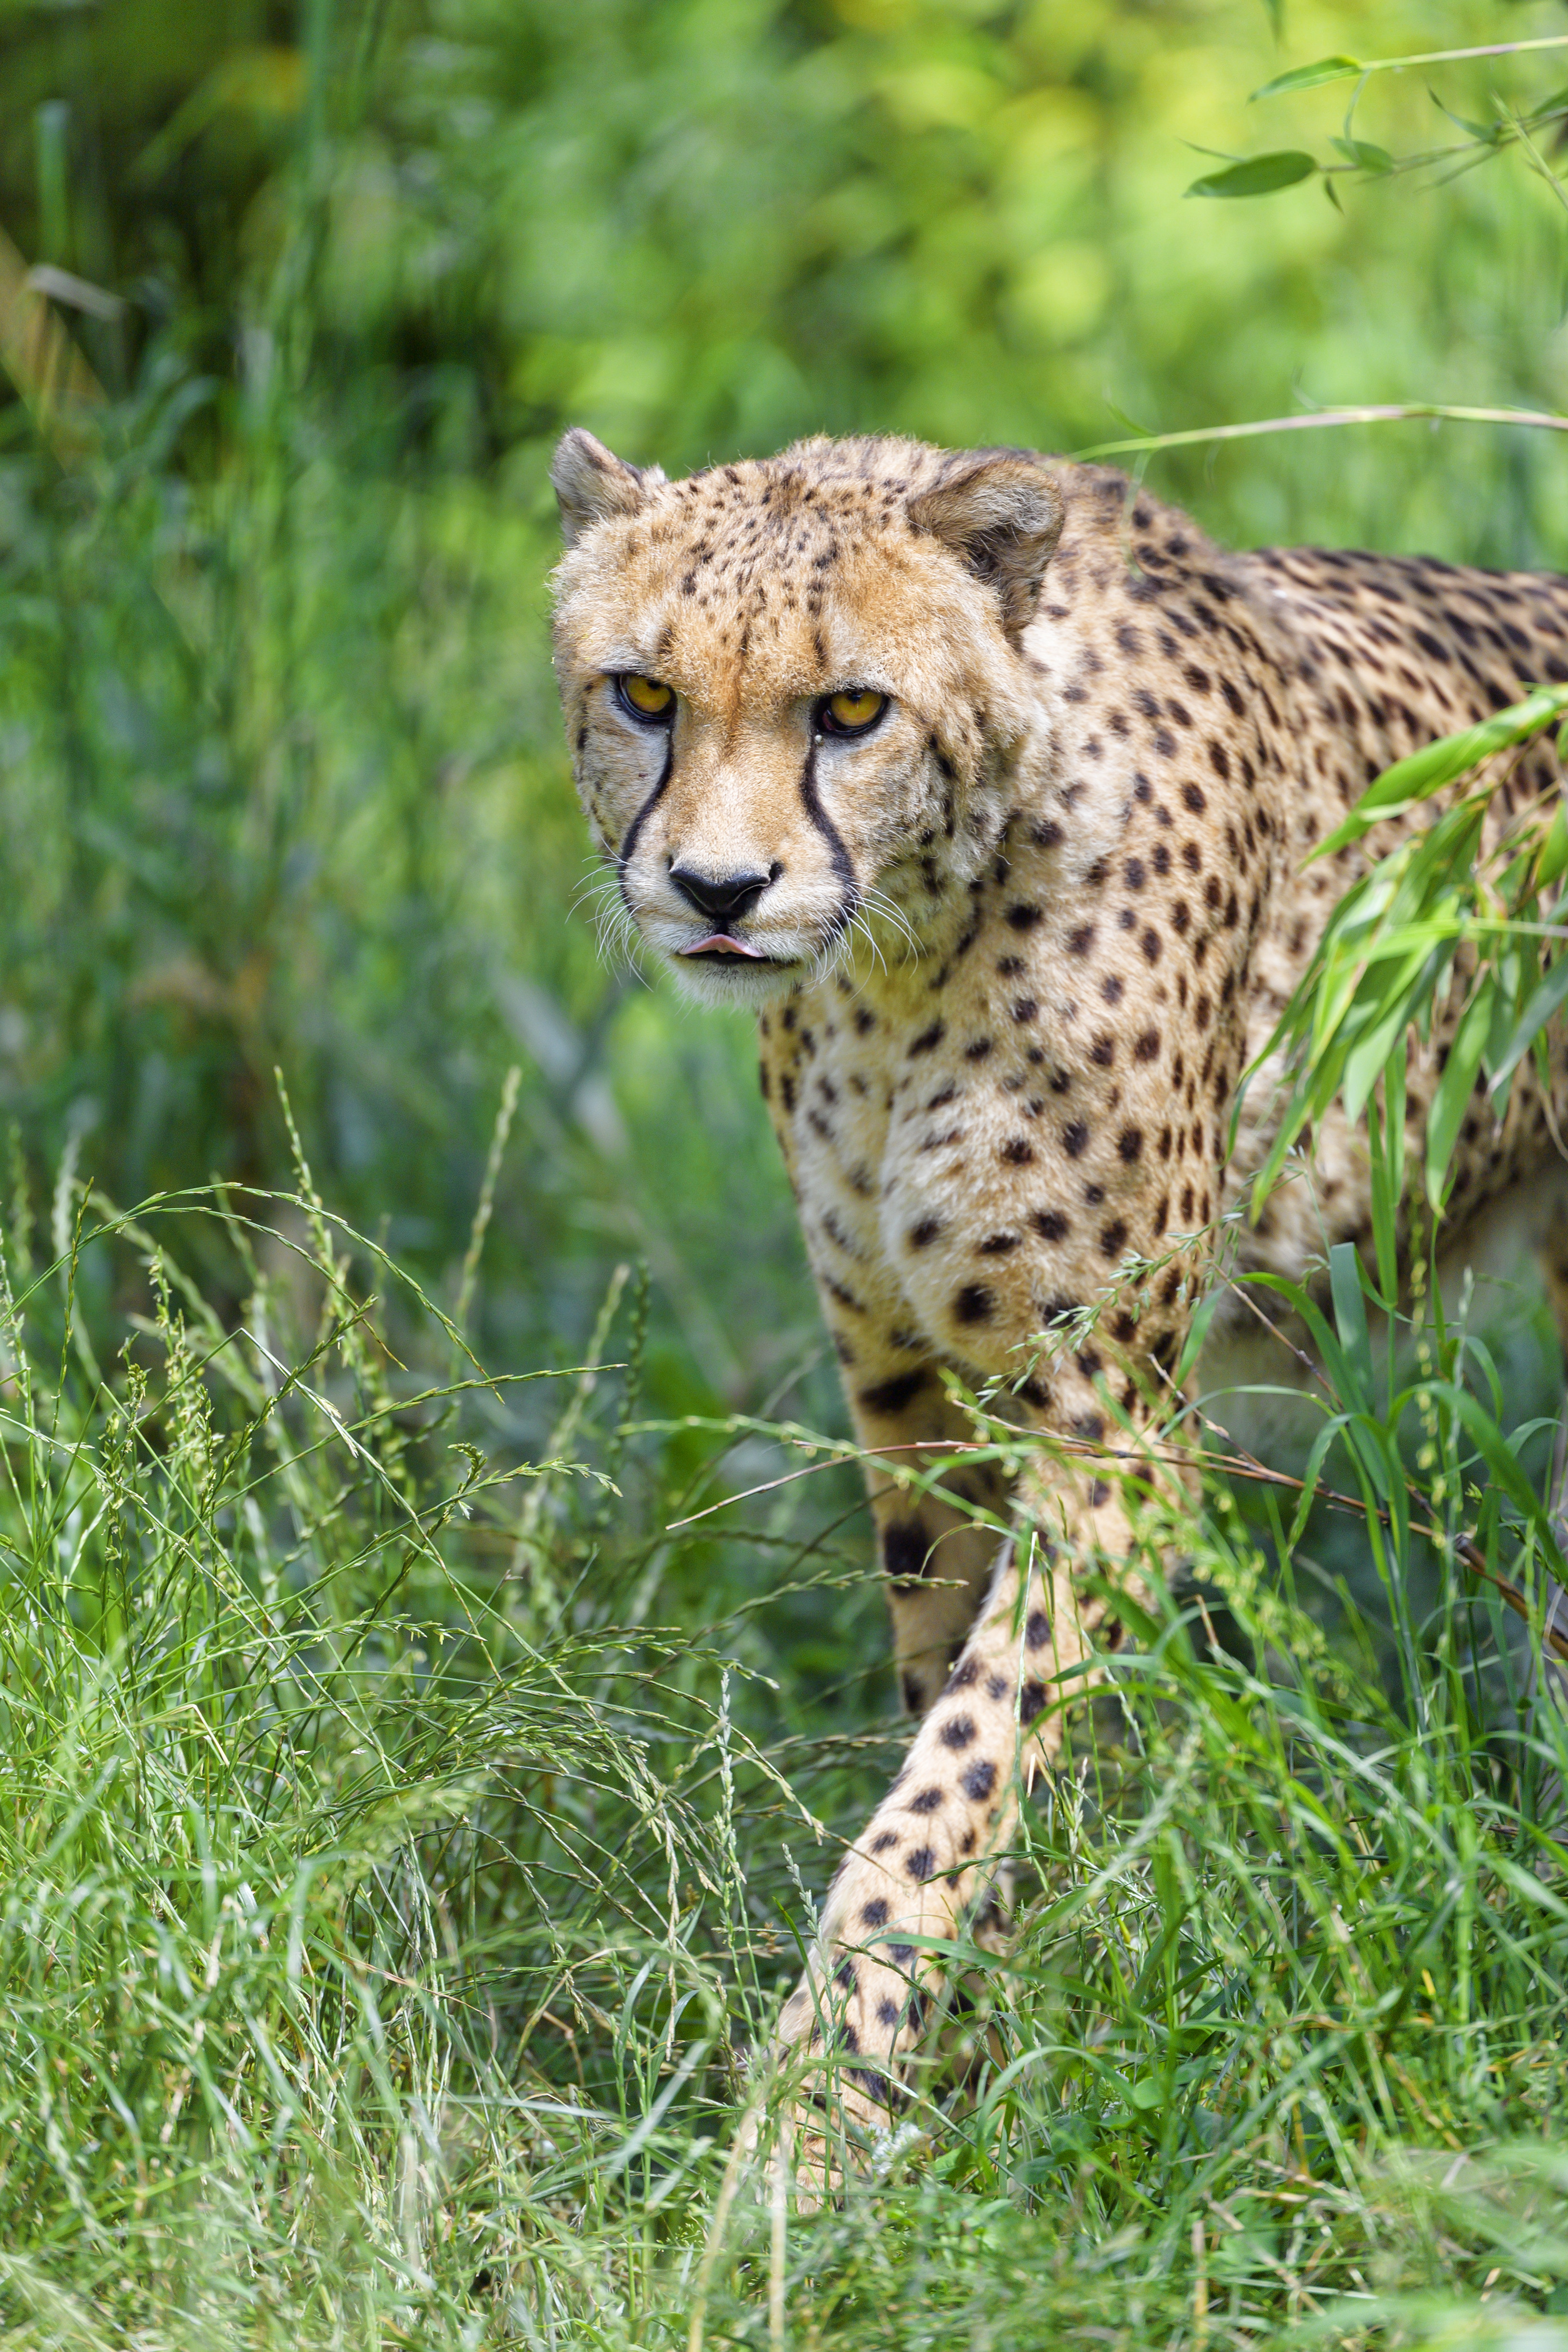 143987 download wallpaper Animals, Cheetah, Predator, Big Cat, Protruding Tongue, Tongue Stuck Out screensavers and pictures for free